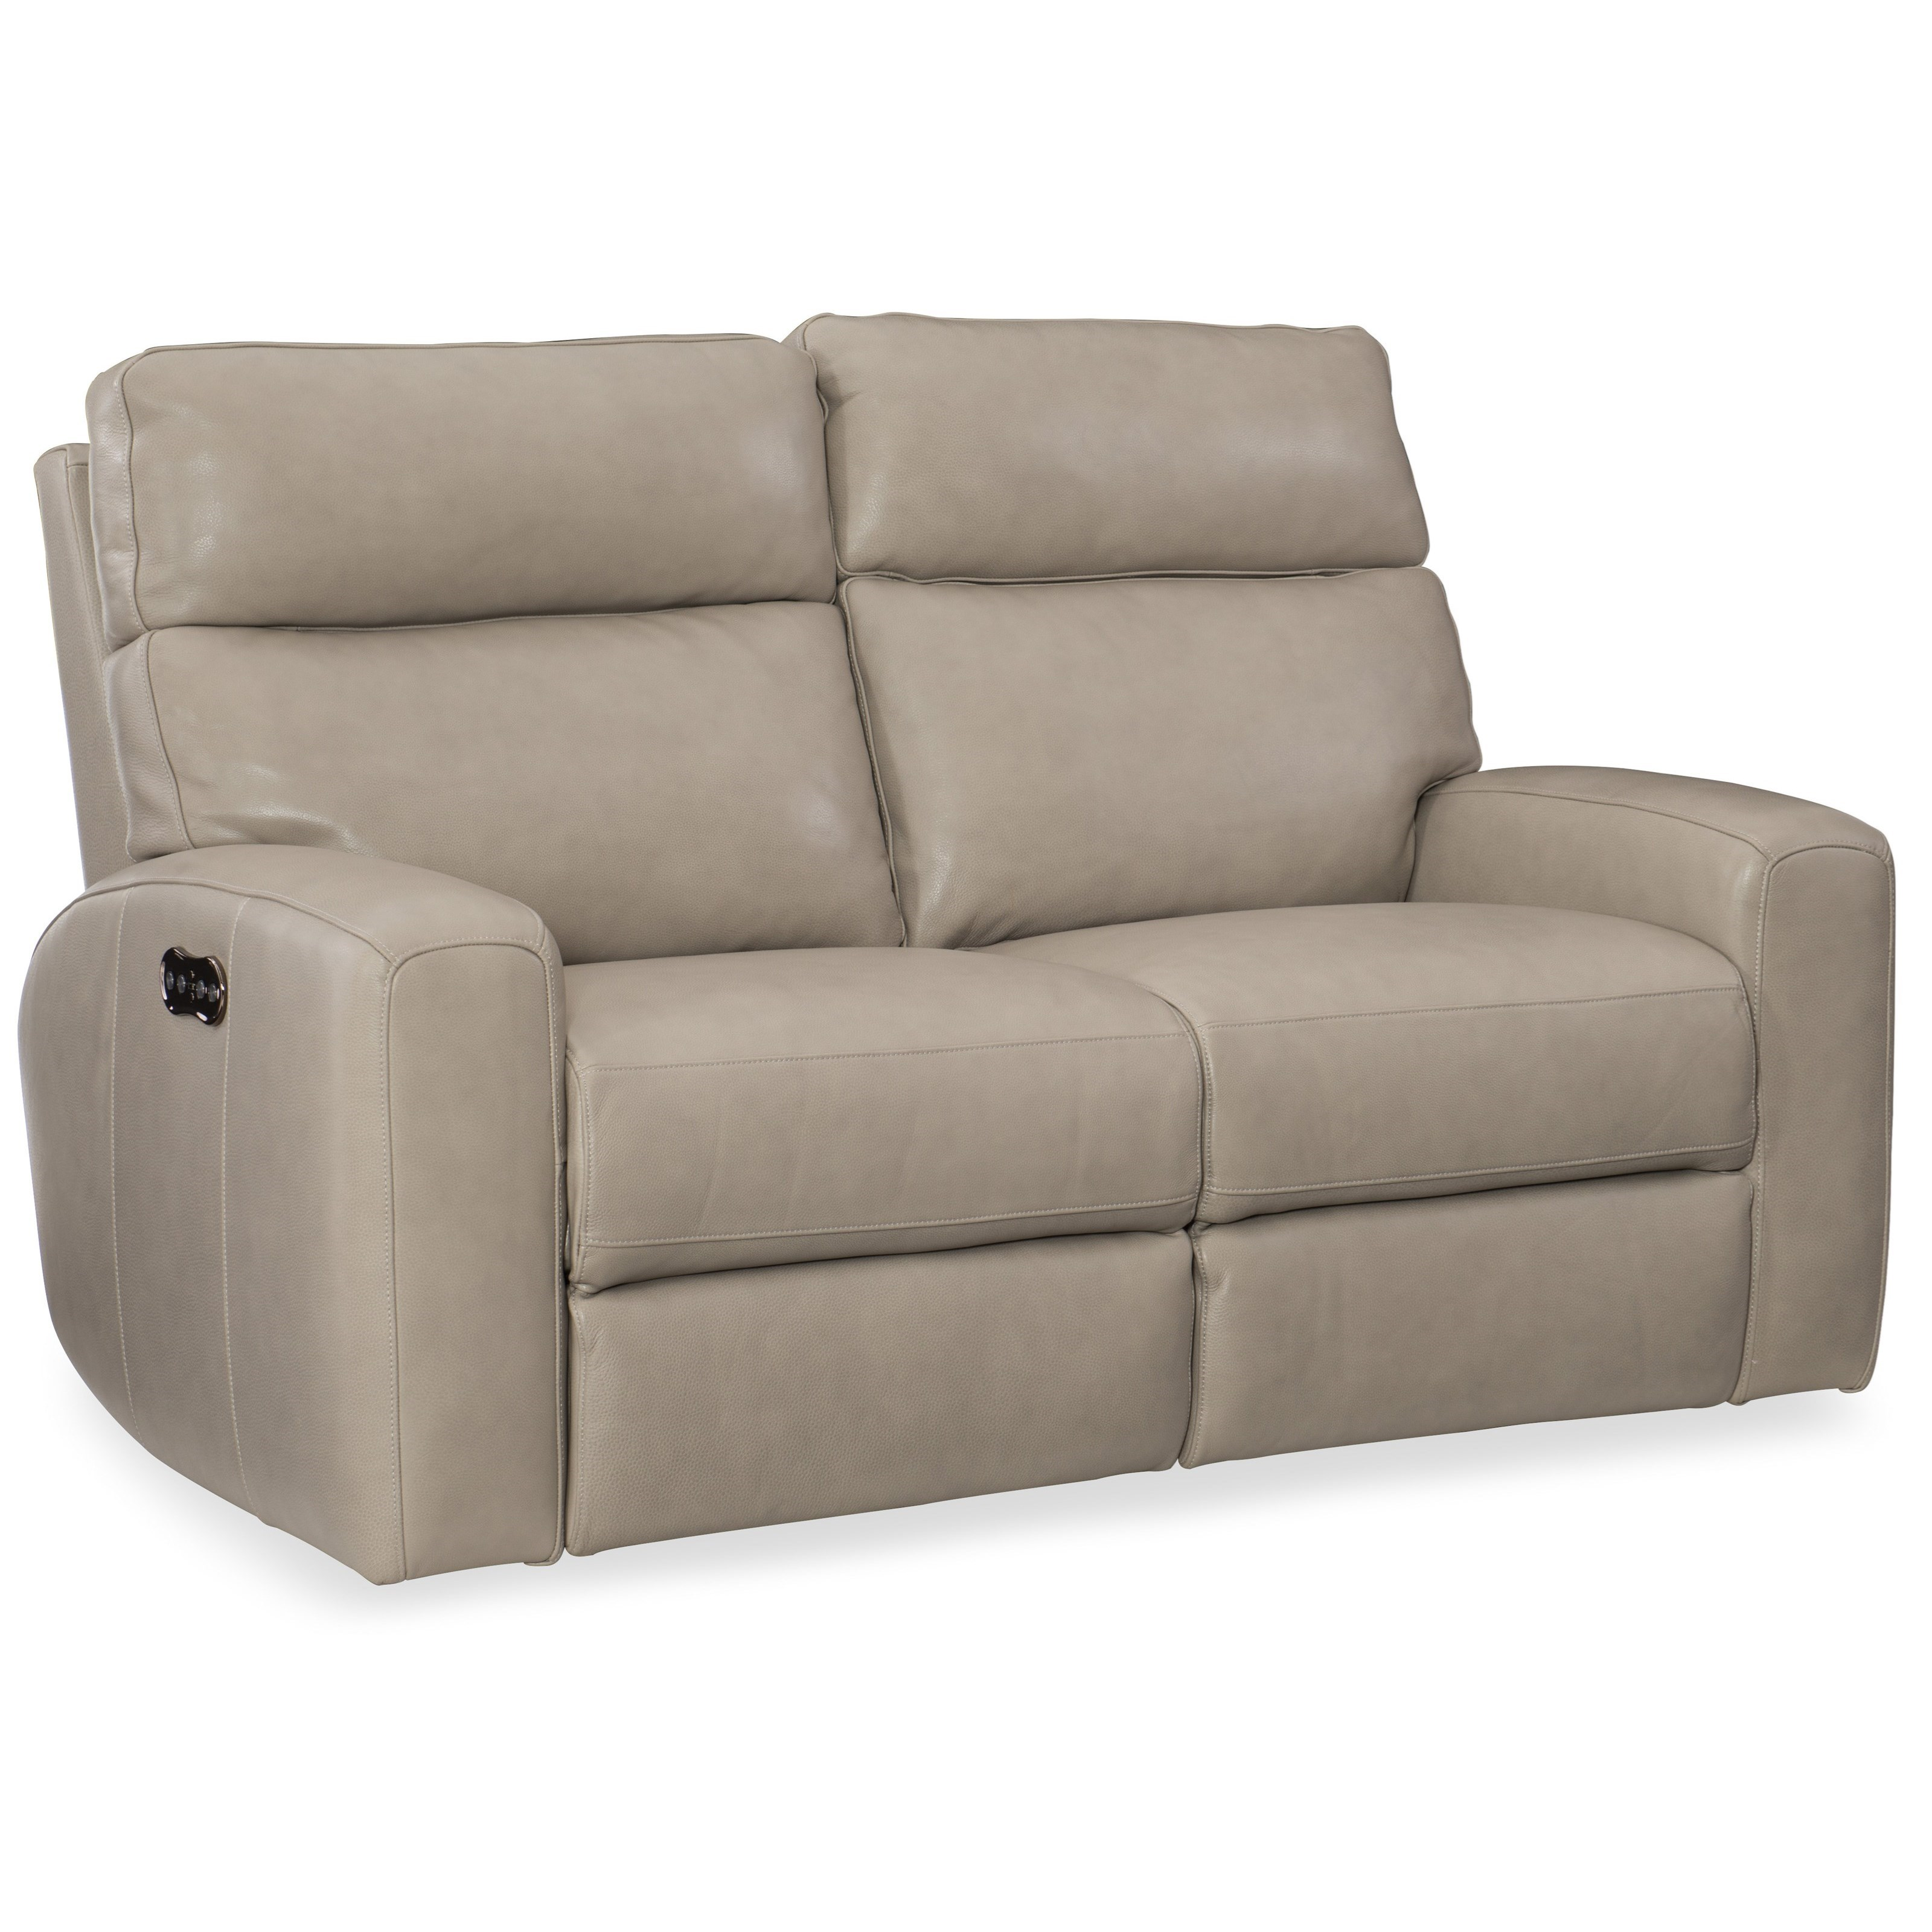 Mowry Mowry Power Motion Loveseat w/Pwr Hdrest by Hooker Furniture at Baer's Furniture